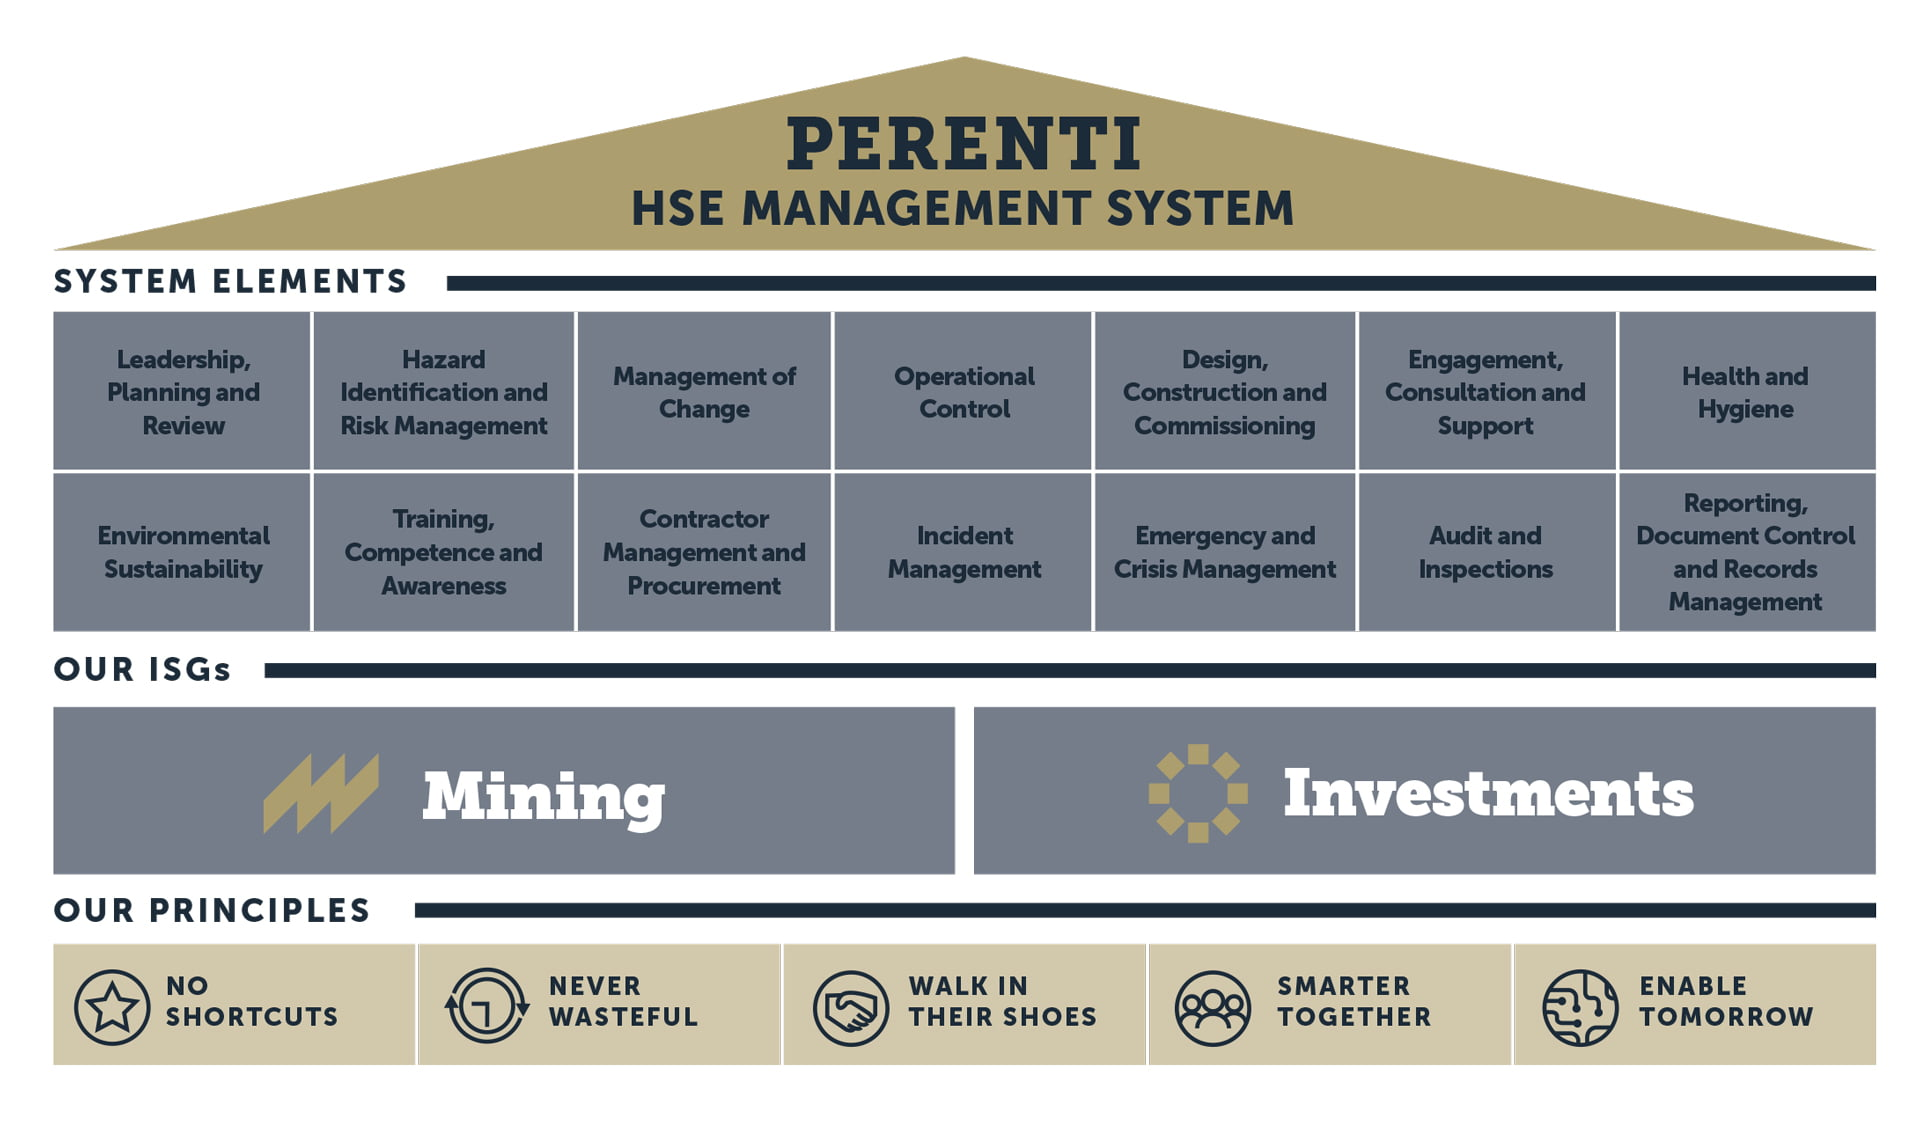 Safety and Health • Perenti HSE MANAGEMENT SYSTEM 2021